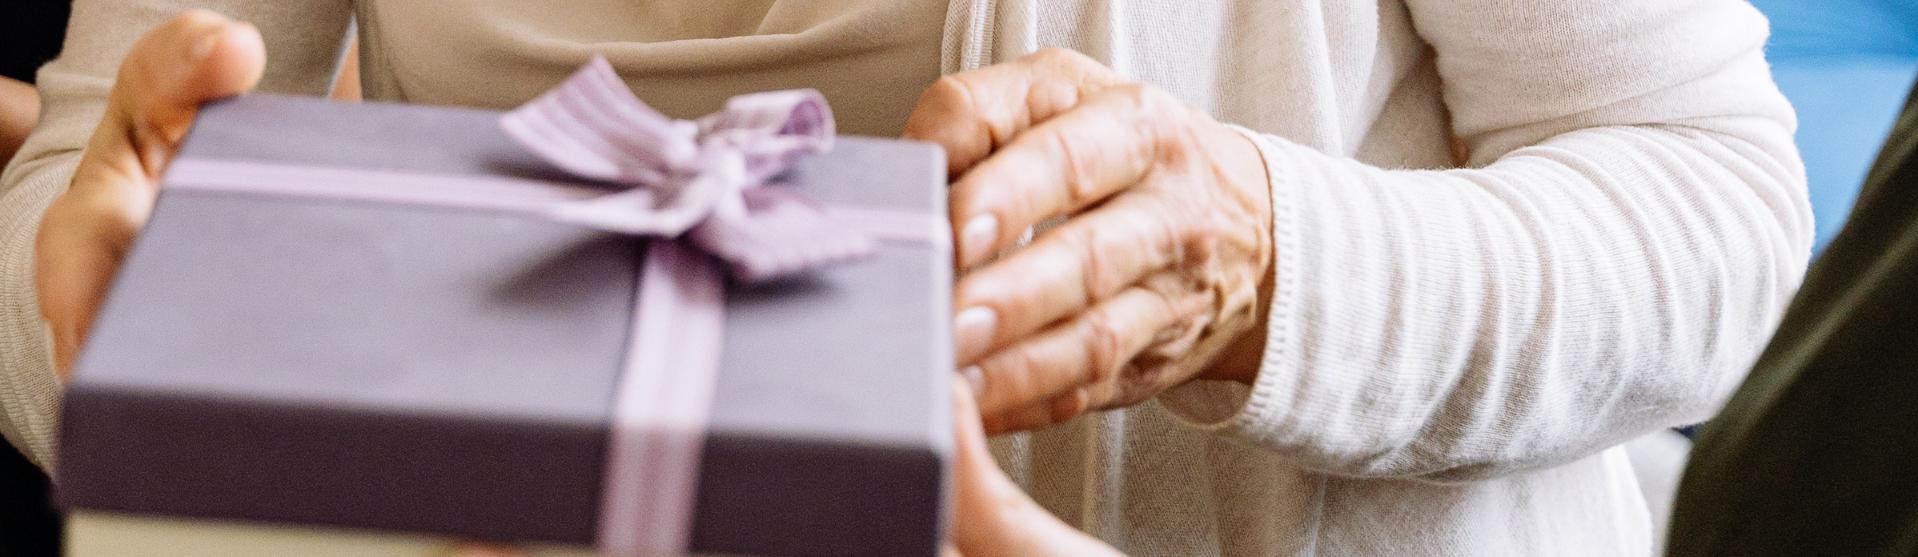 Hand holding a purple gift box